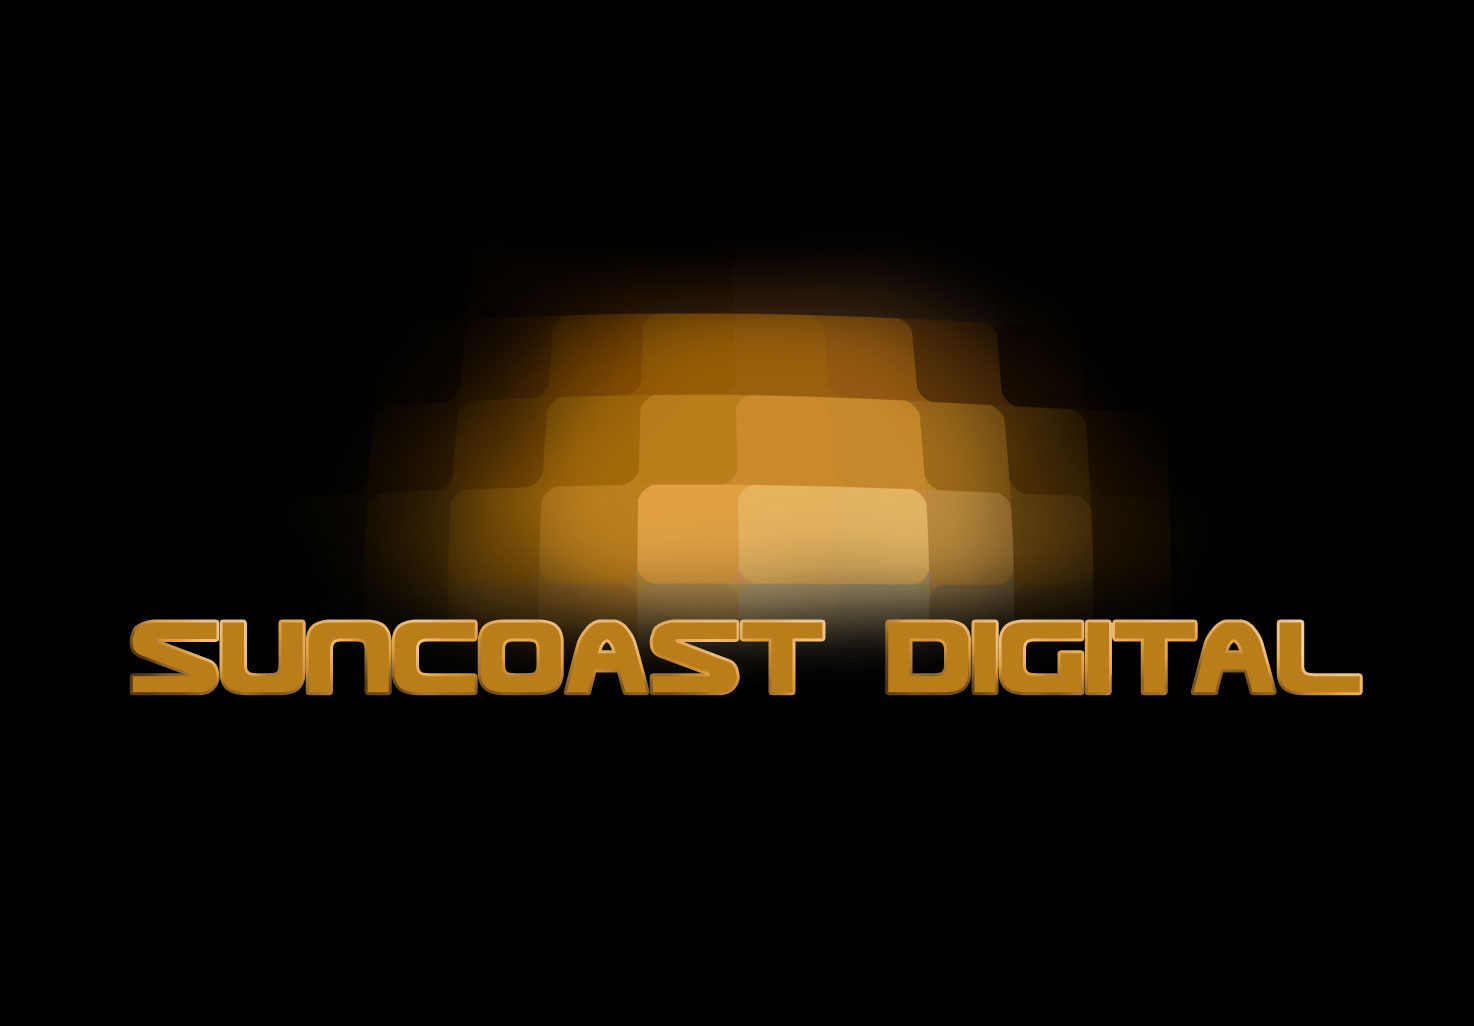 Suncoast Digital logo design